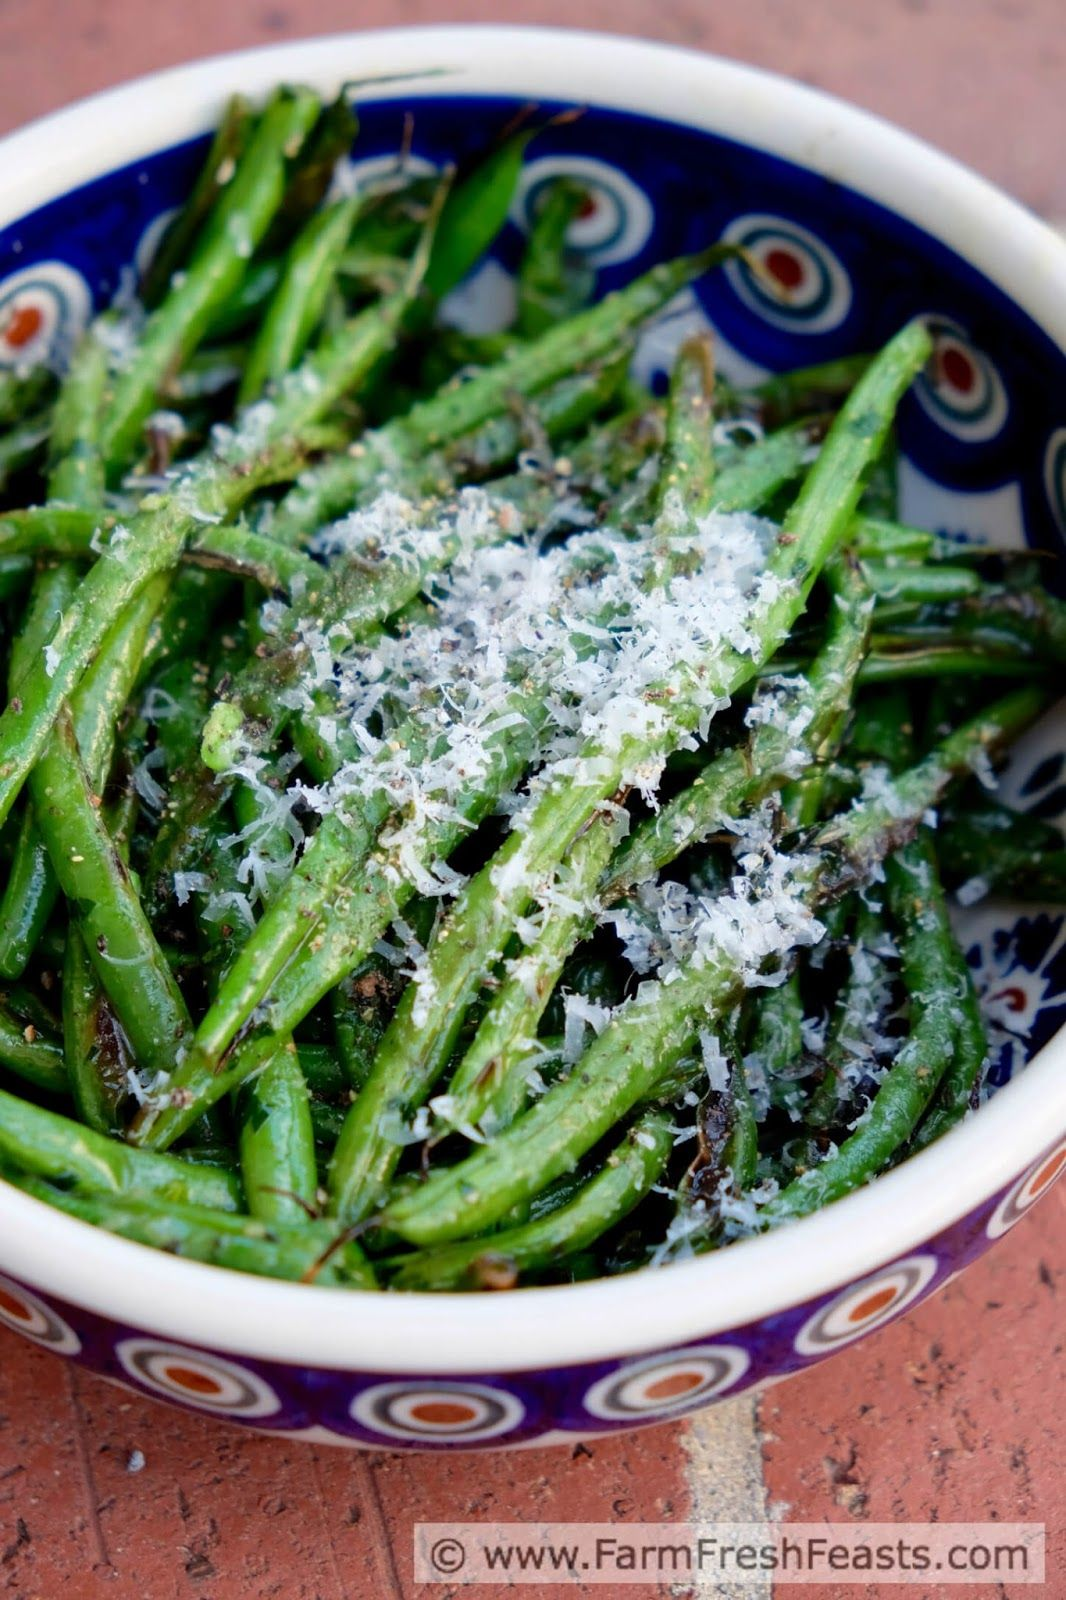 Grilled Green Beans with Garlic Scape Pesto and Parm www.farmfreshfeasts.com